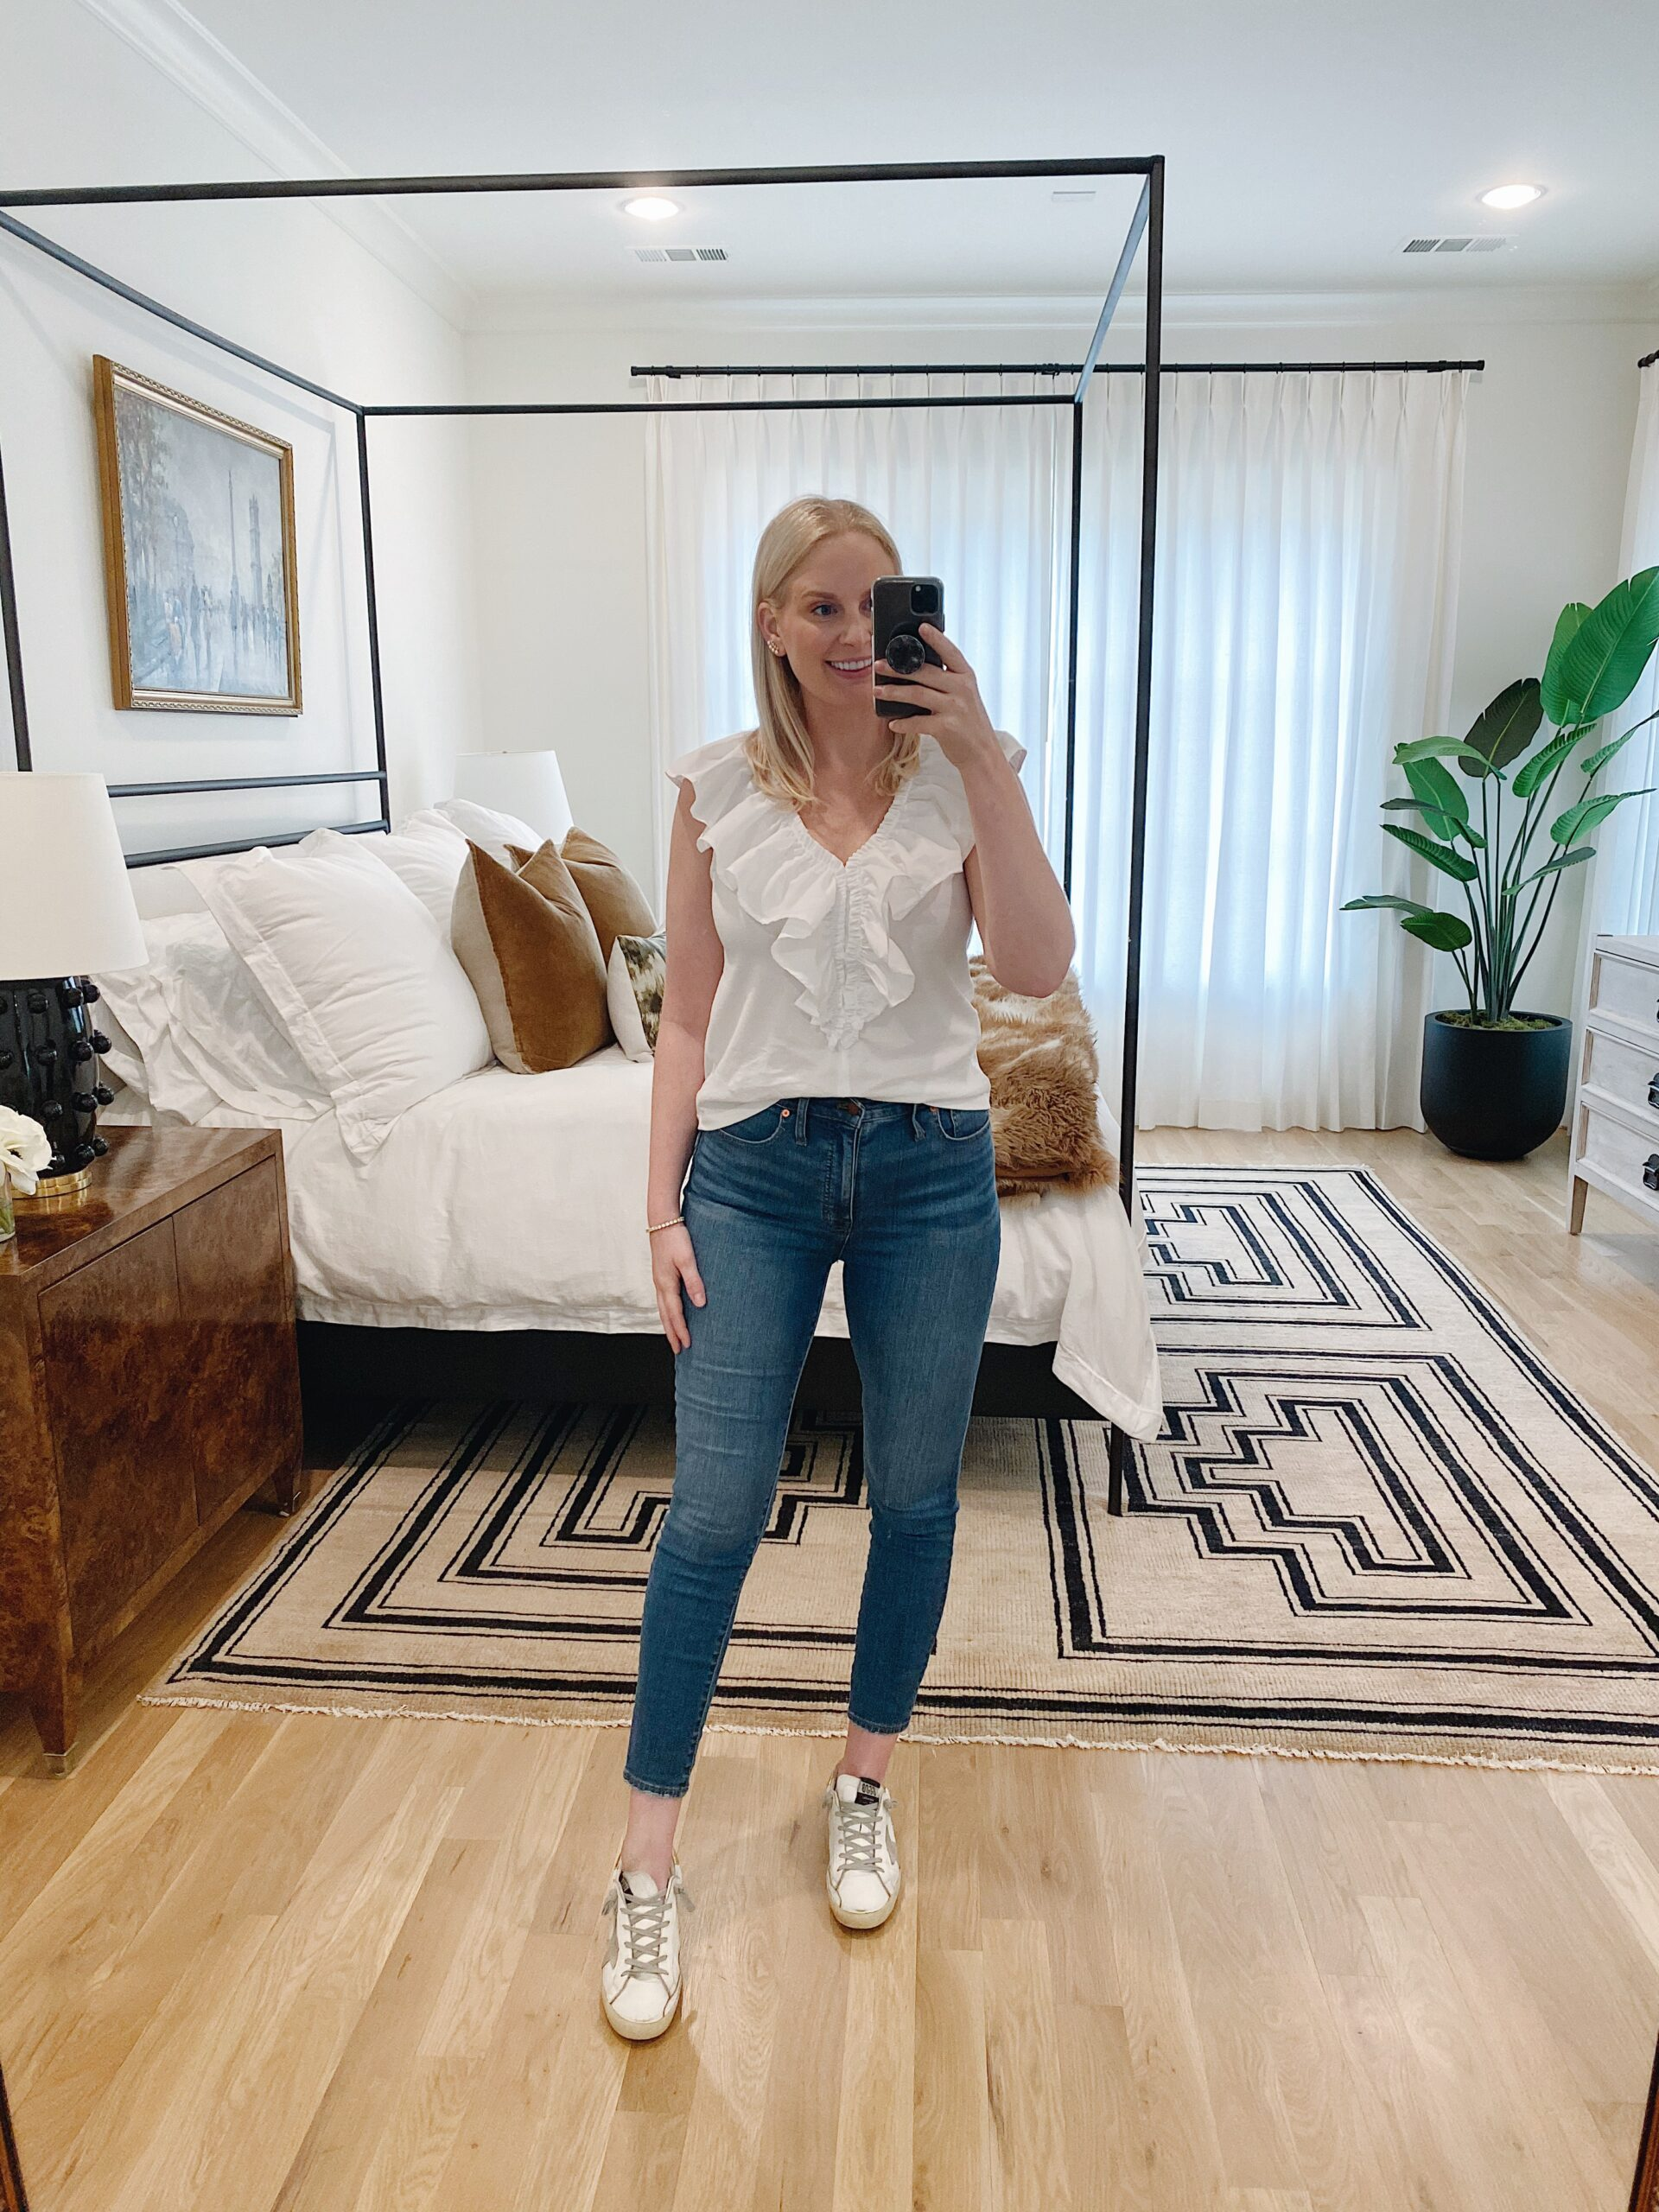 INSTAGRAM LATELY // RECENT OUTFITS